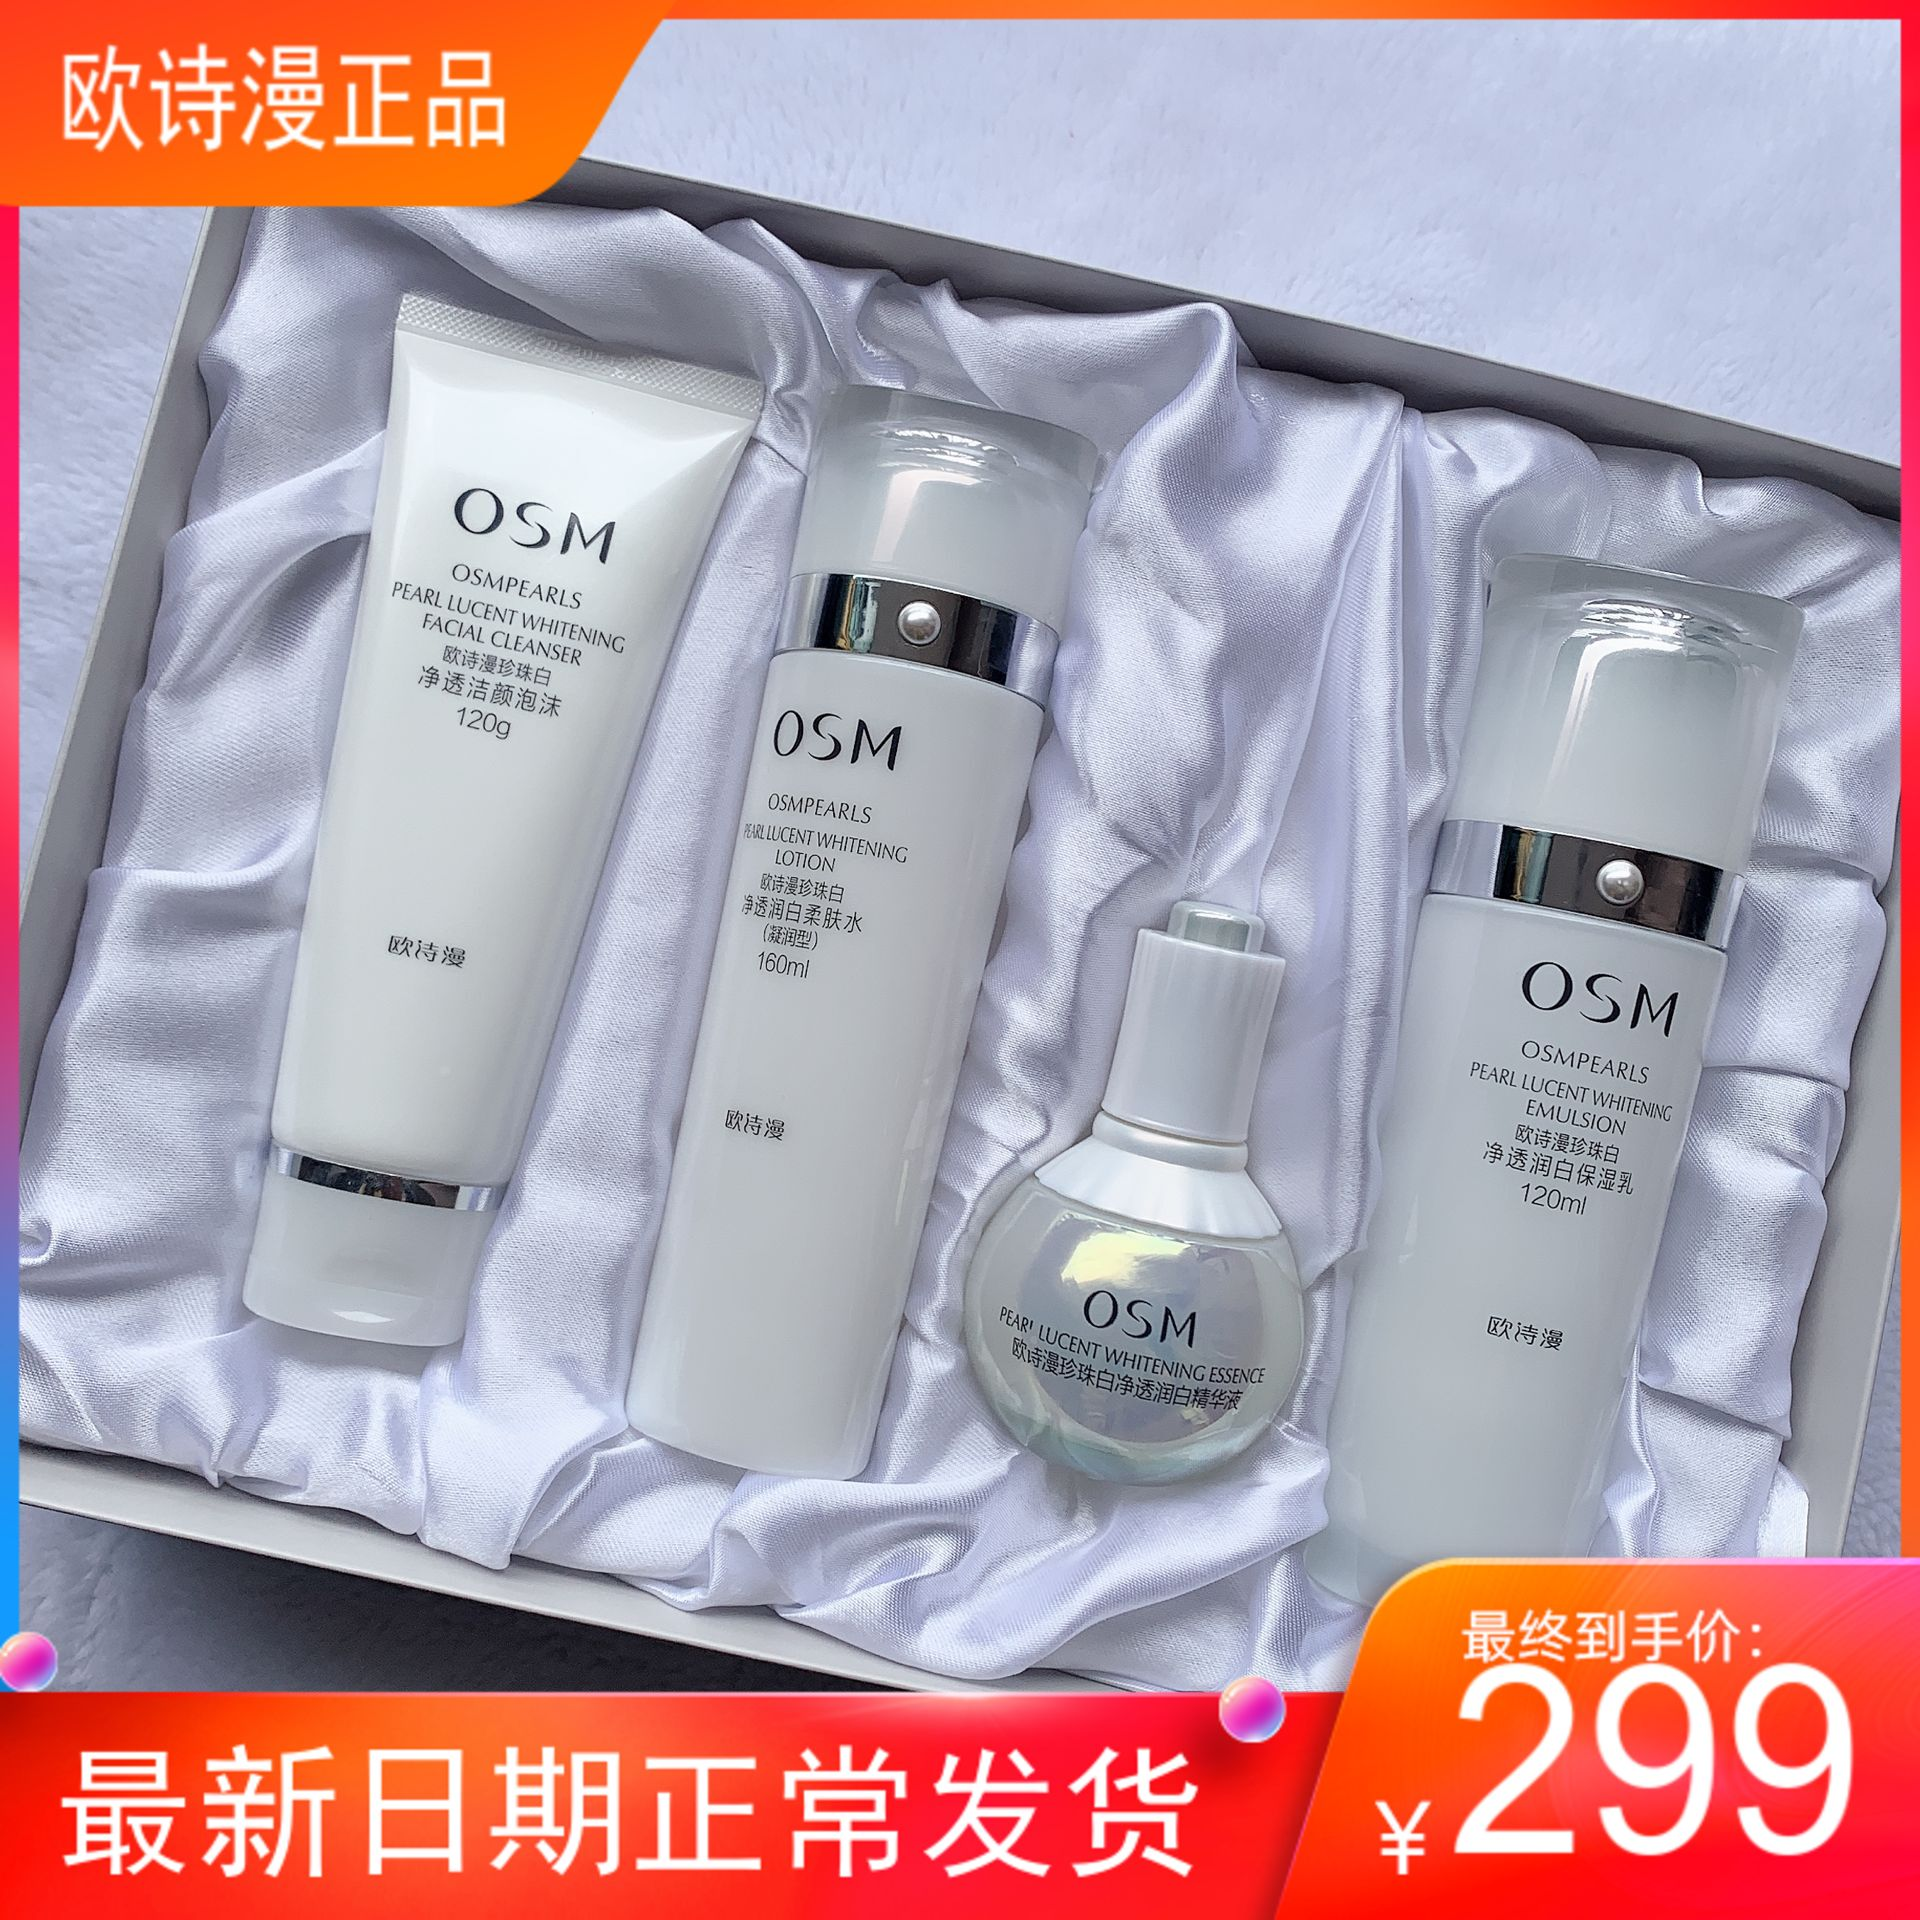 New product oshiman Pearl White set moisturizing milk four piece skin care cosmetics package